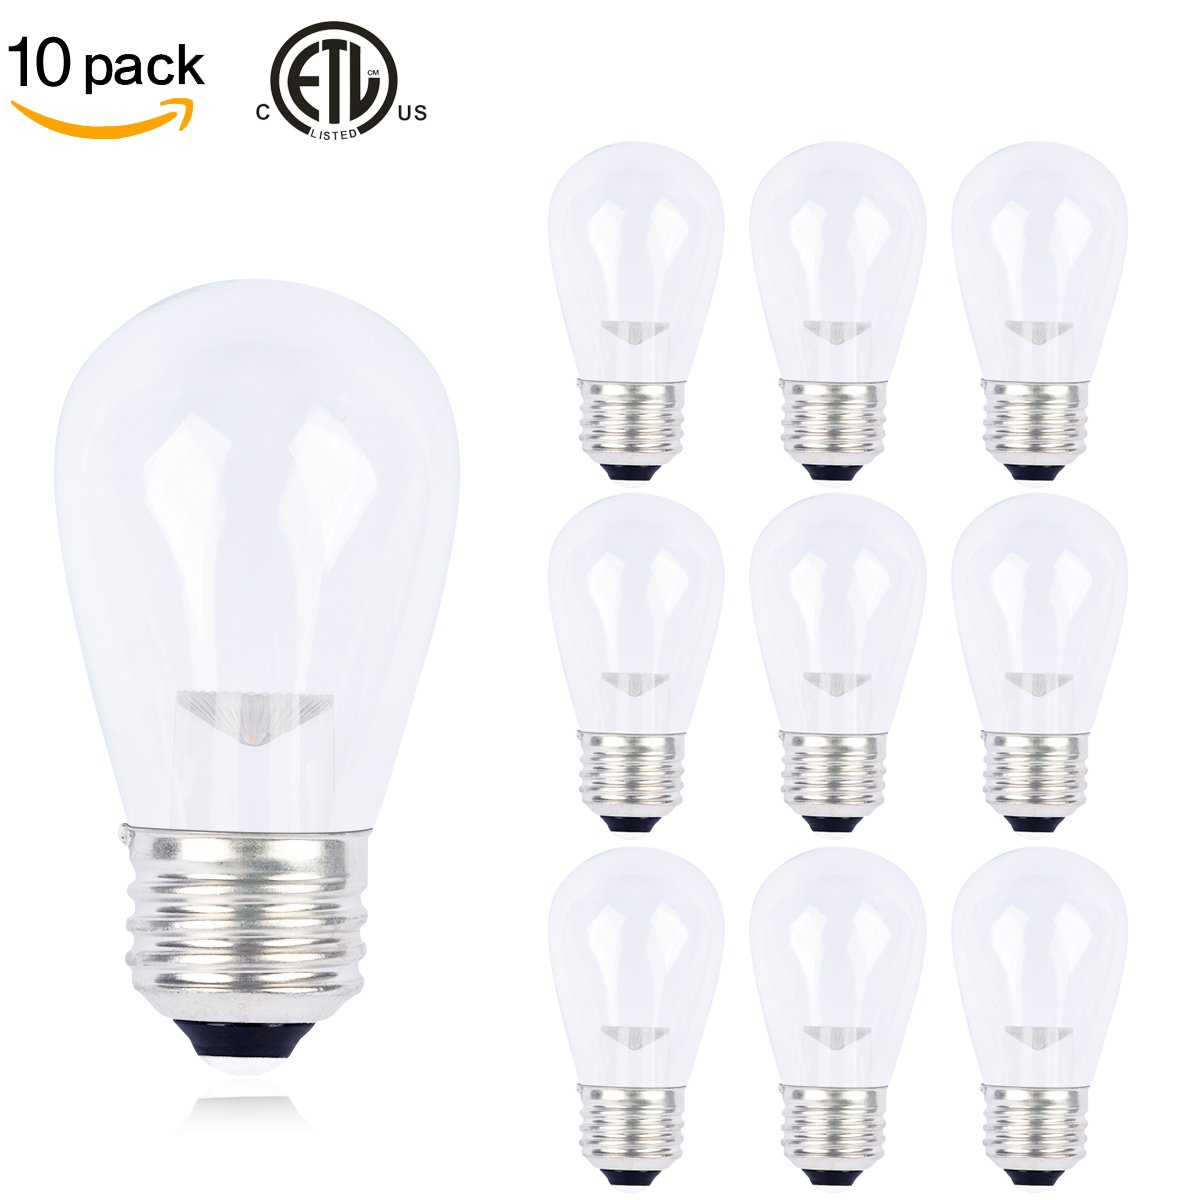 10 Pack Slz S14 Led Bulbs Clear Glass Warm White K E26 Base 0 7w Led Bu